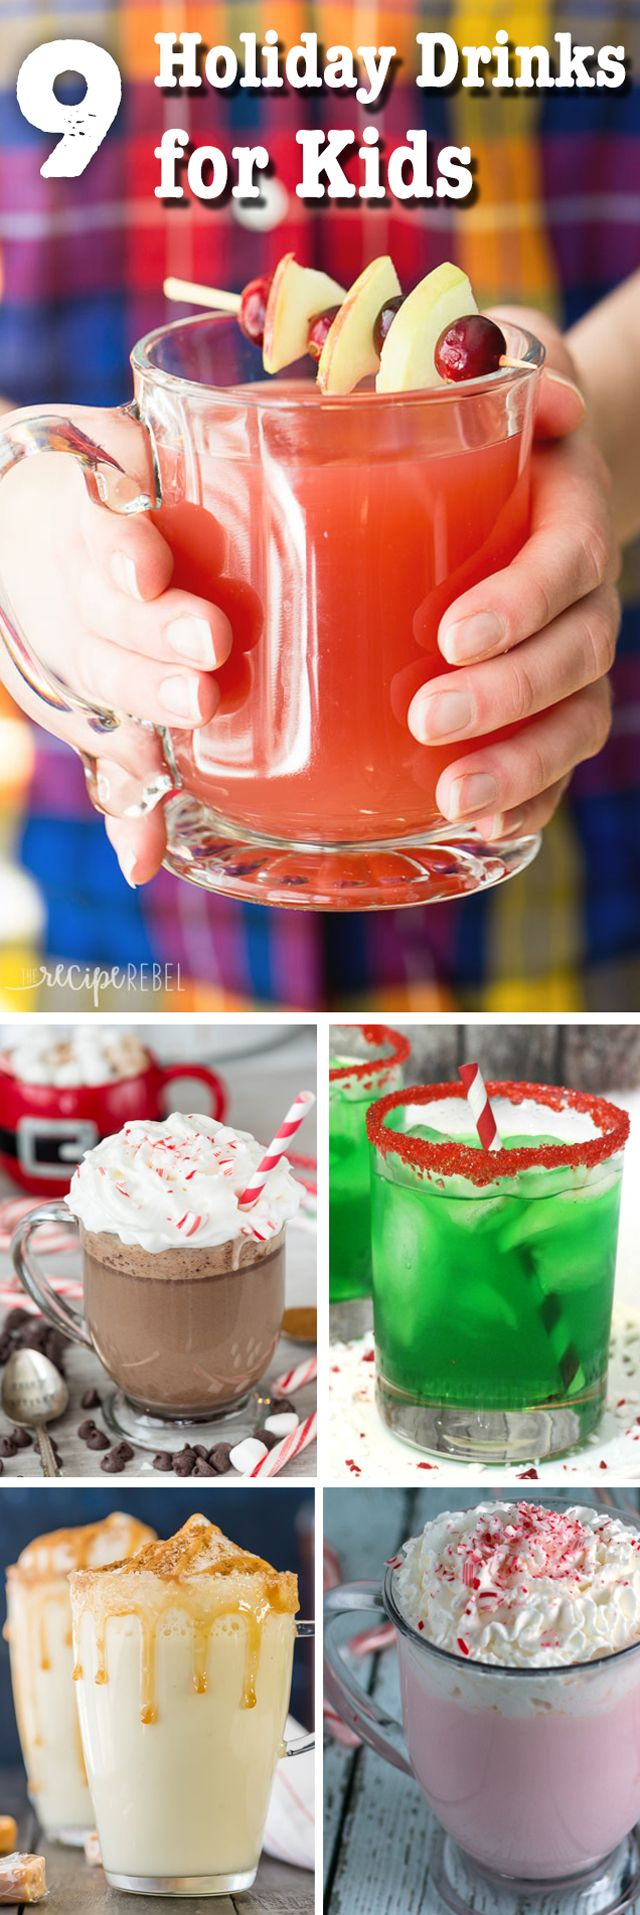 Make the holidays extra special with nine fun holiday drinks just for kids!